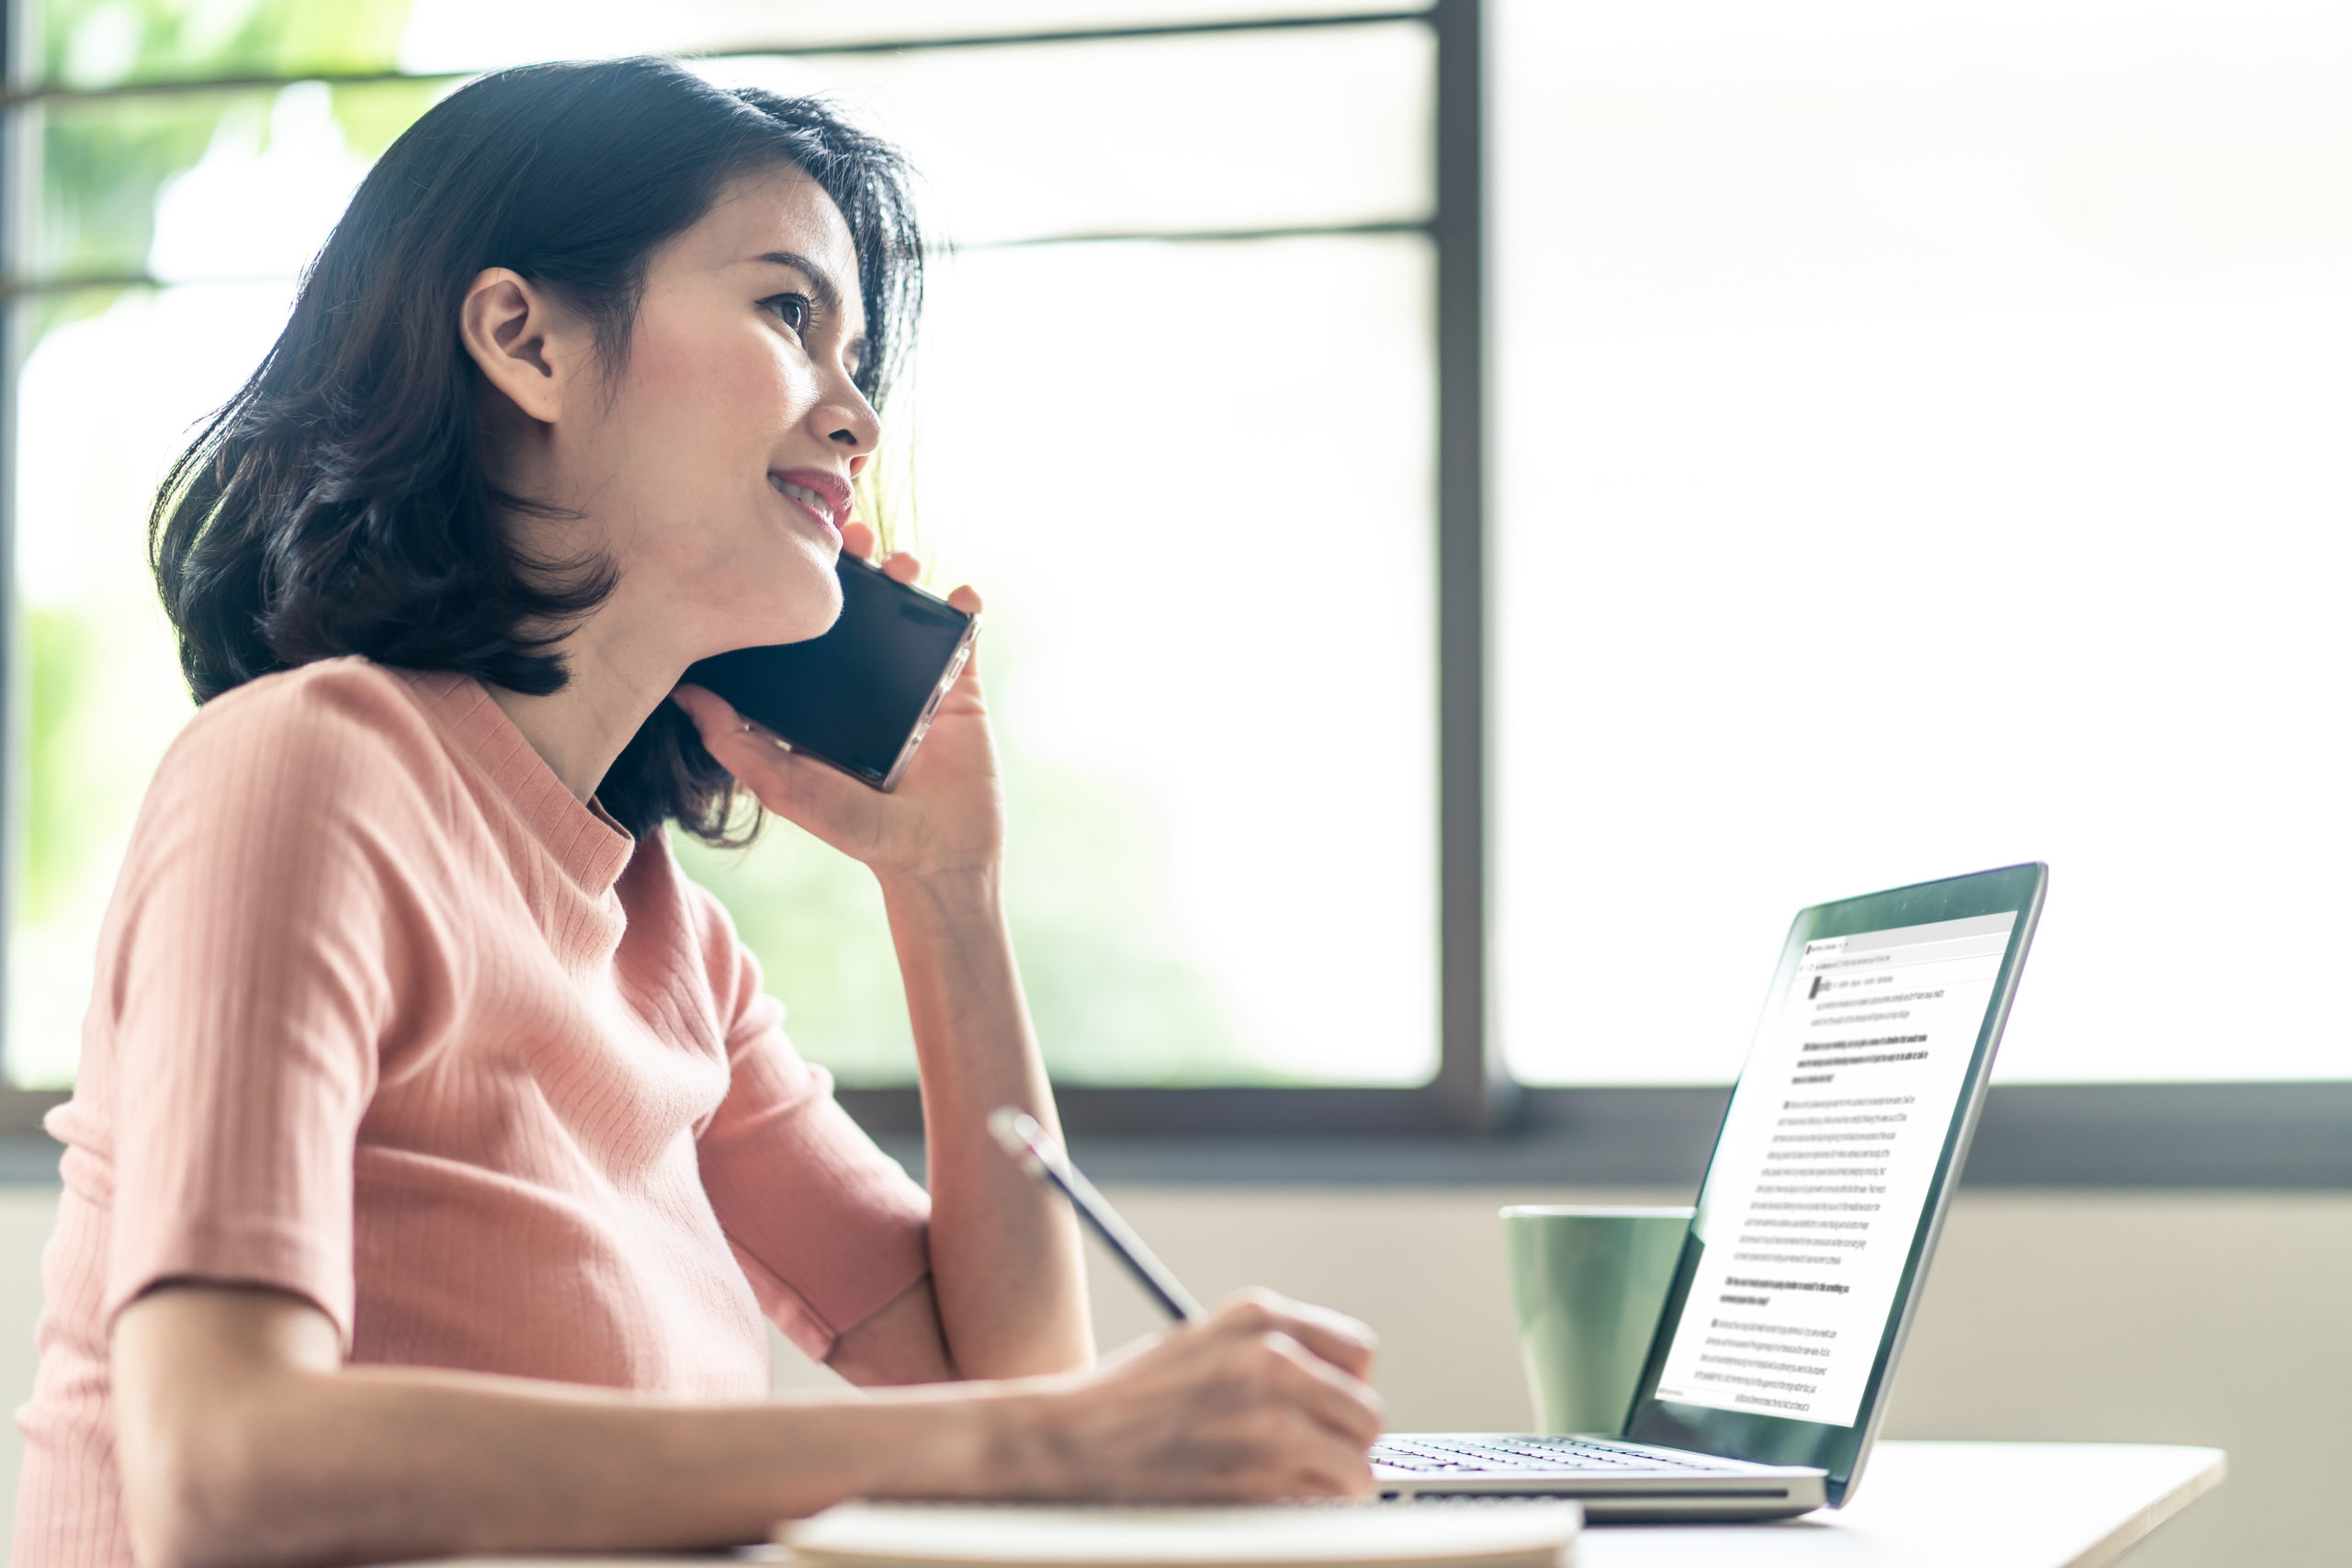 Asian young business woman sit and write note in a notebook while talk on phone and open files in laptop. During Coronavirus crisis Covid19 outbreak girl work from home for prevent contract a disease.